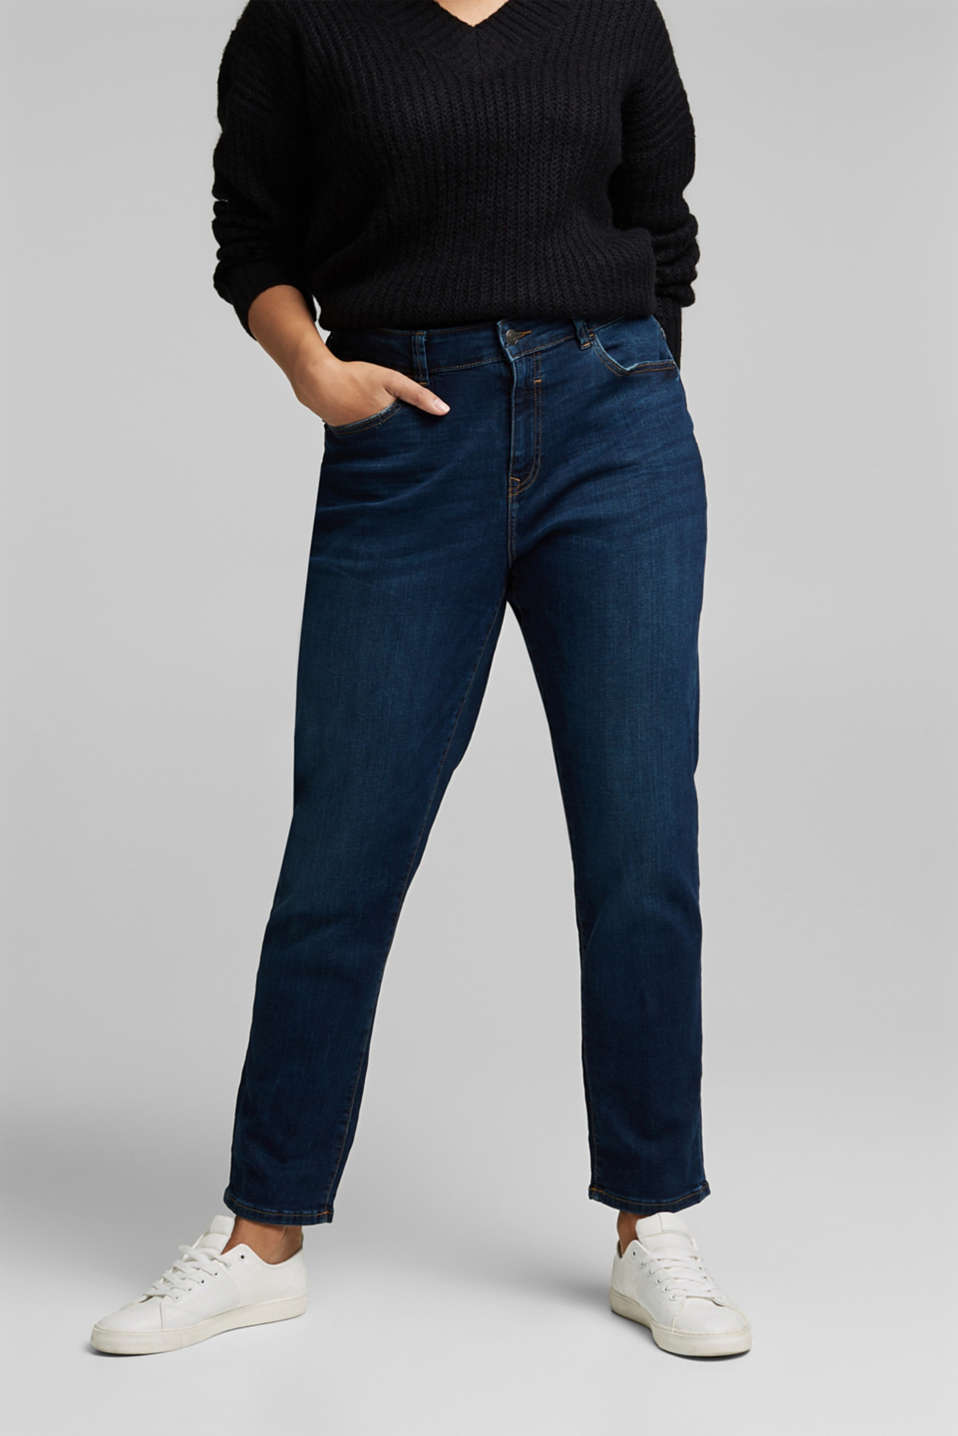 Esprit - CURVY stretch jeans, organic cotton